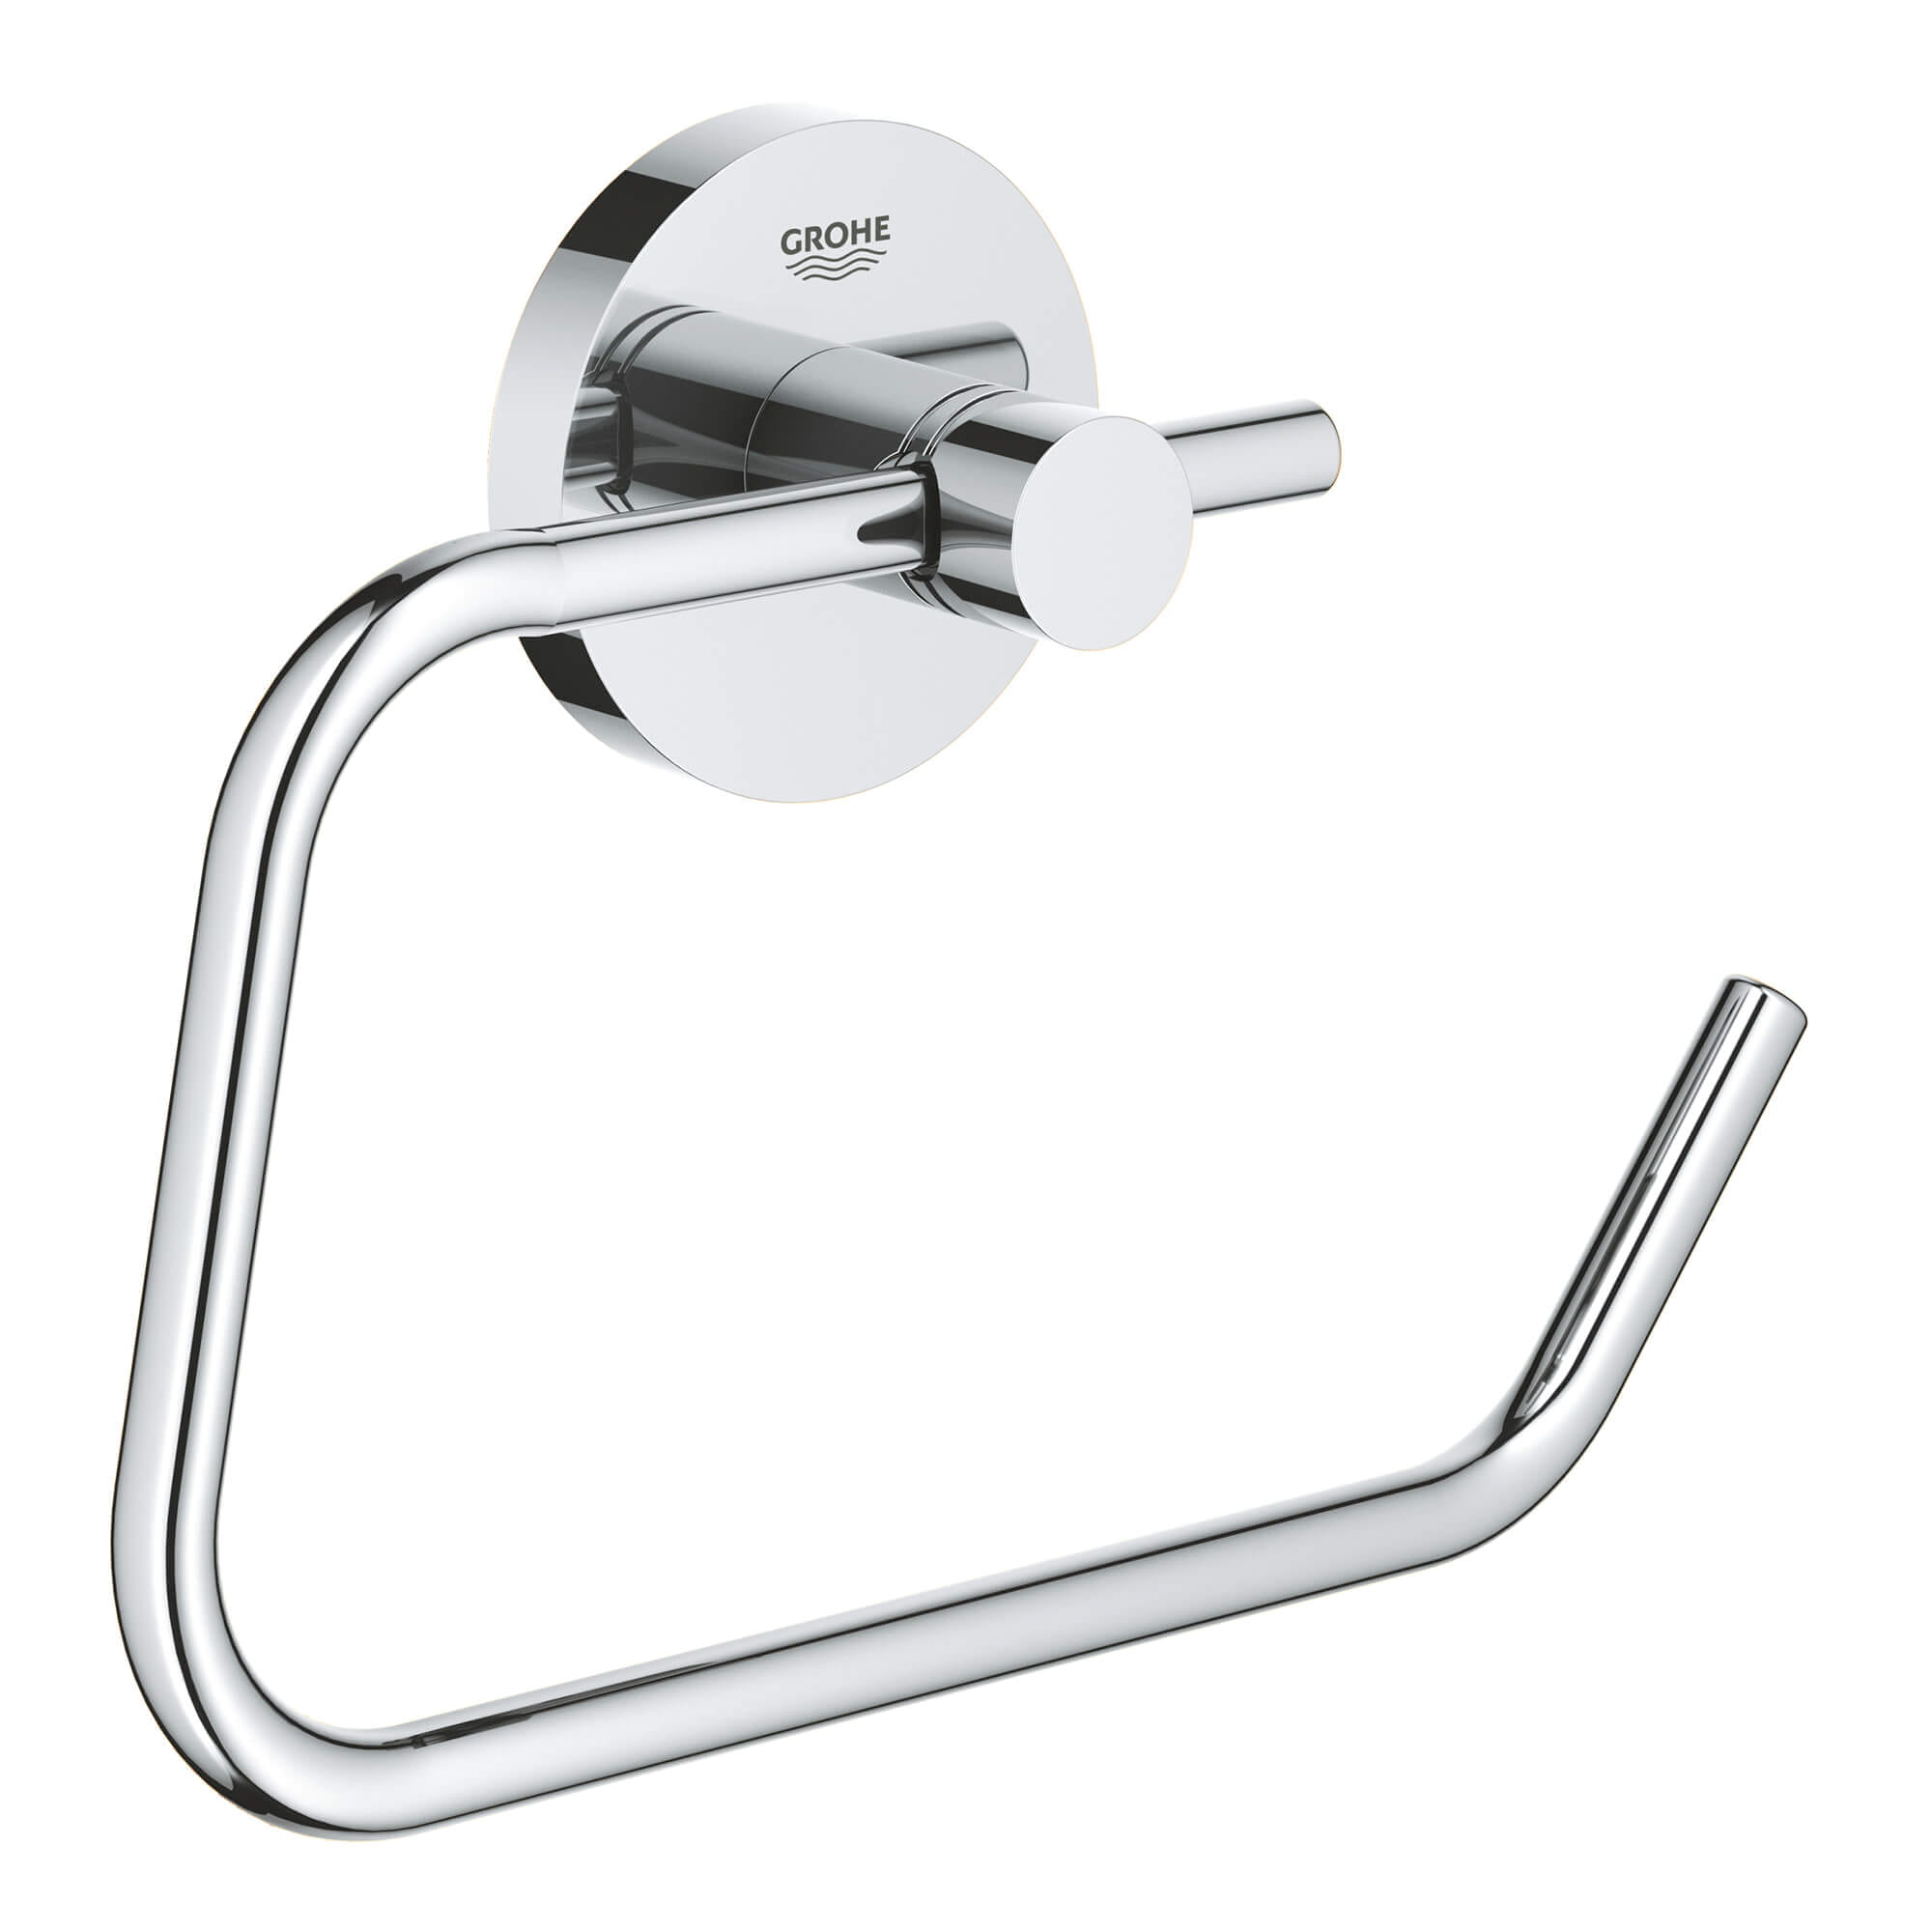 Essentials Distributeur de papier GROHE CHROME